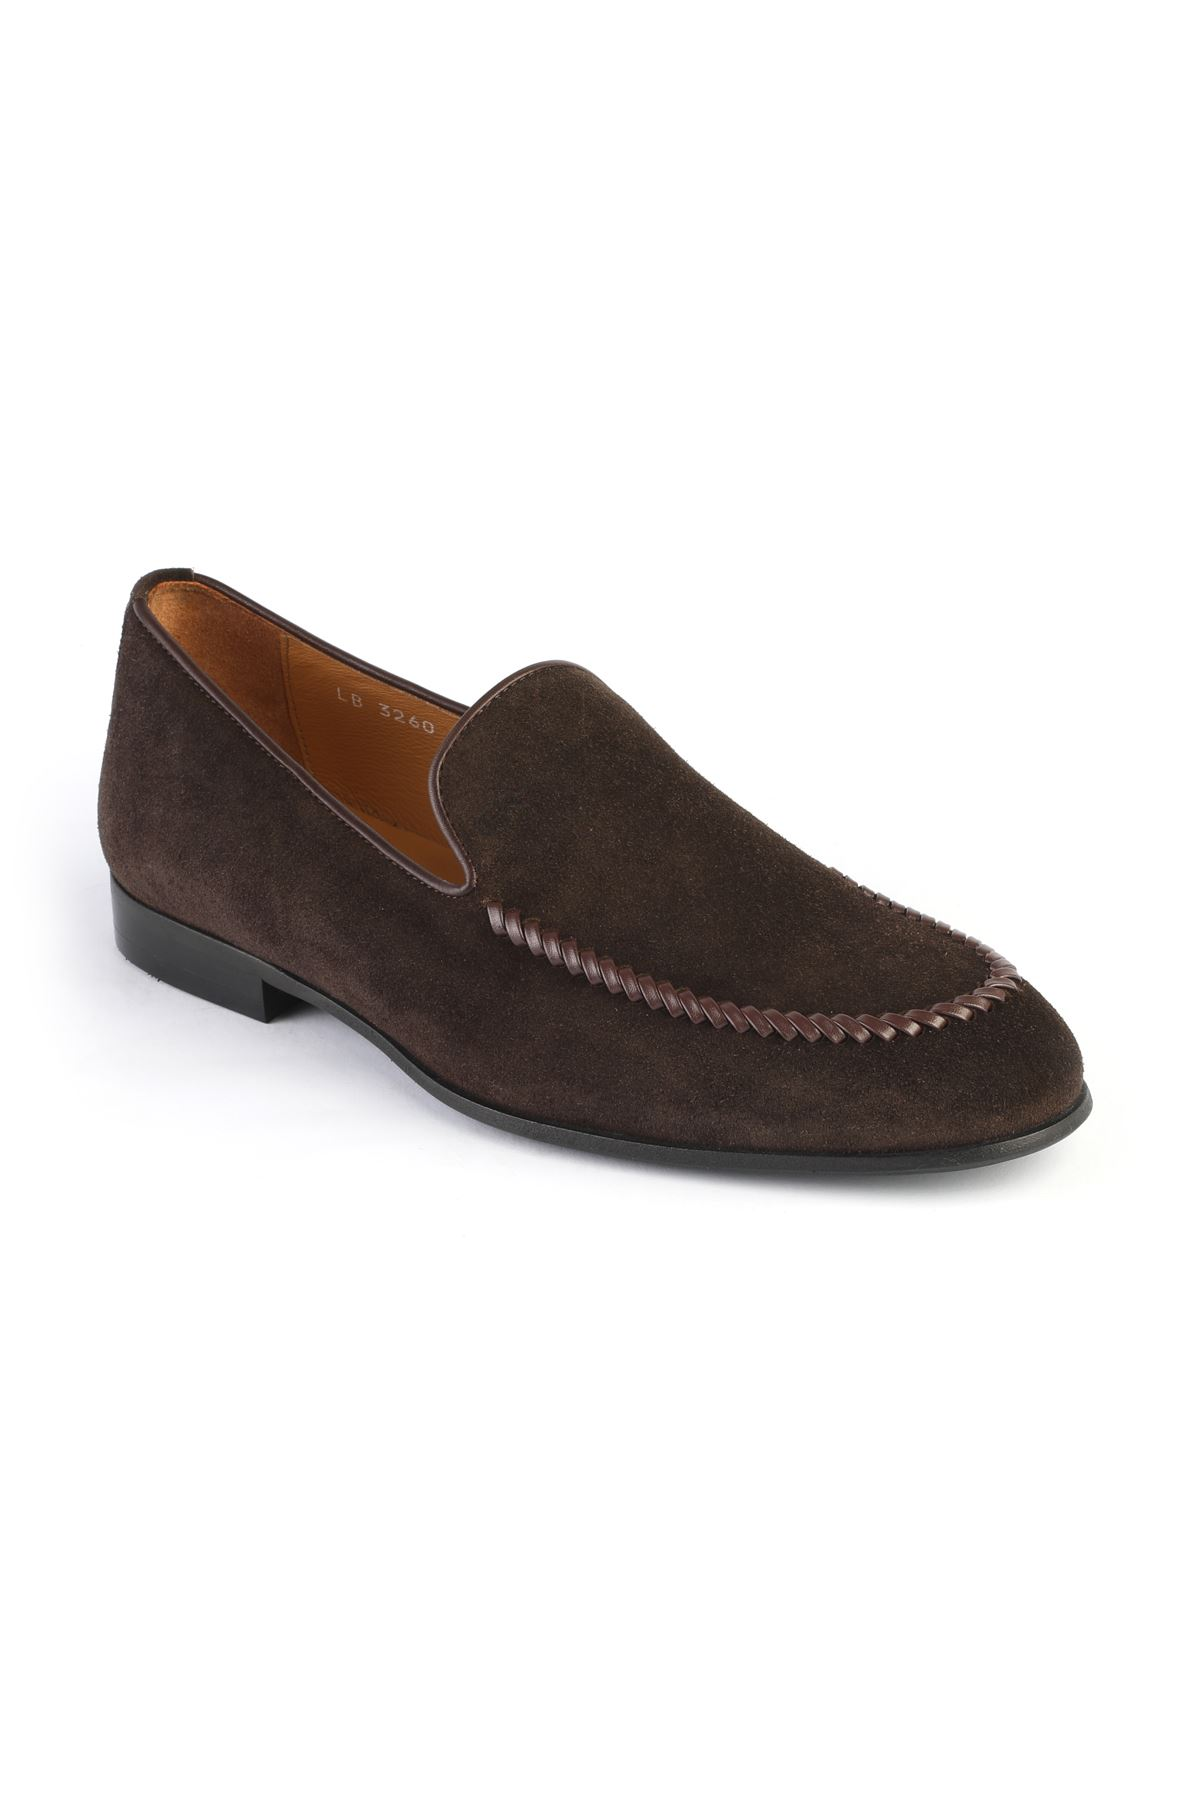 Libero 3260 Brown Loafers